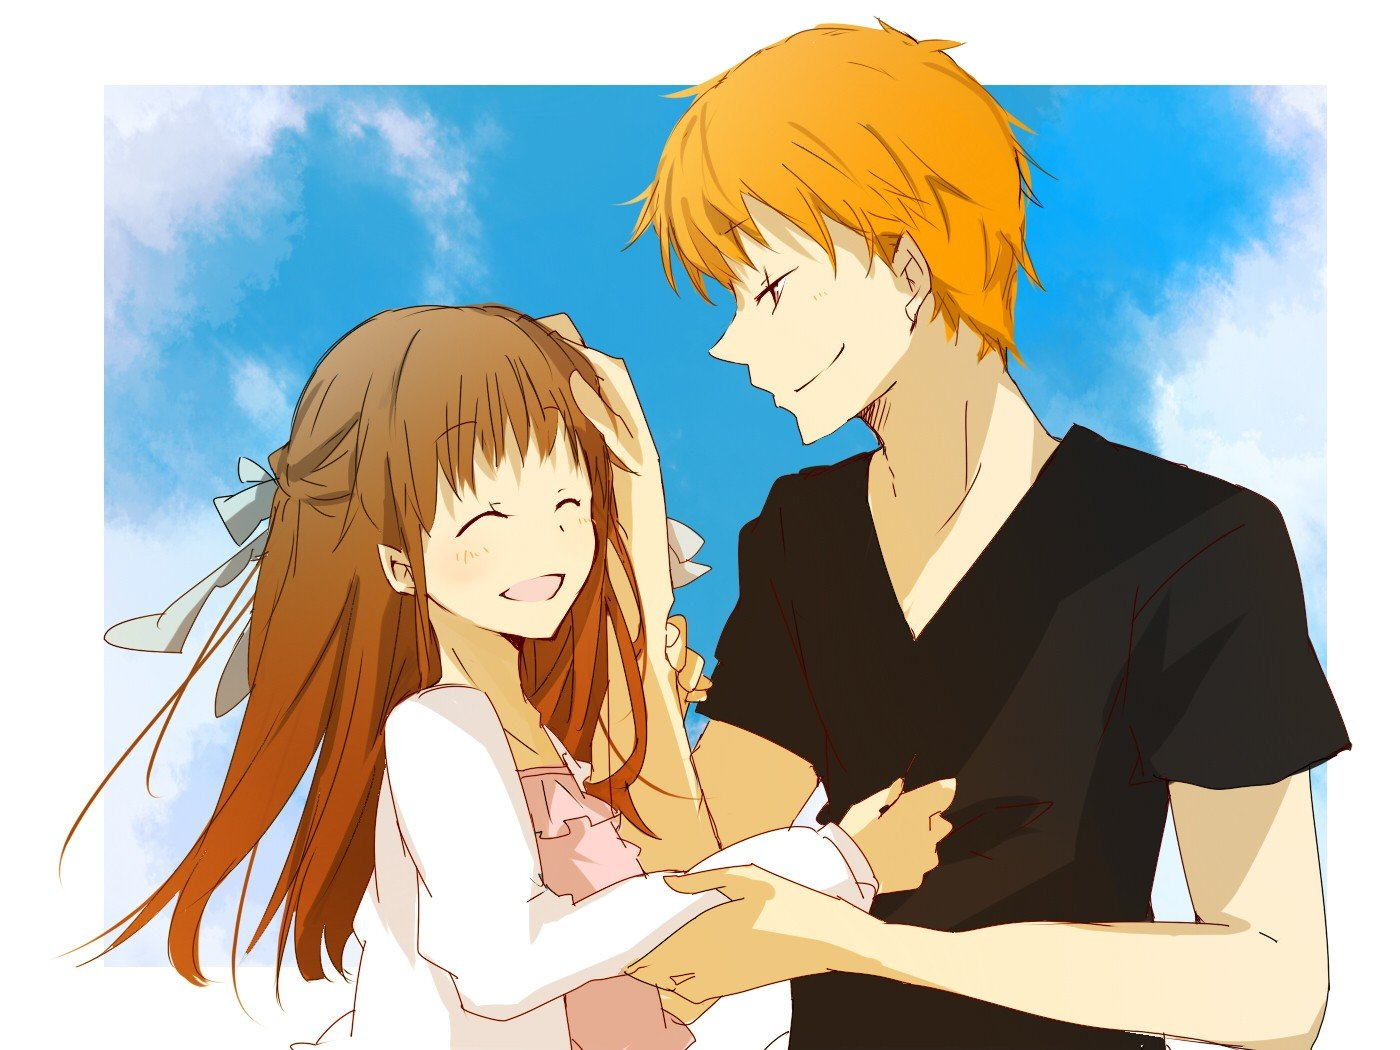 The characters from 'Fruits Basket'